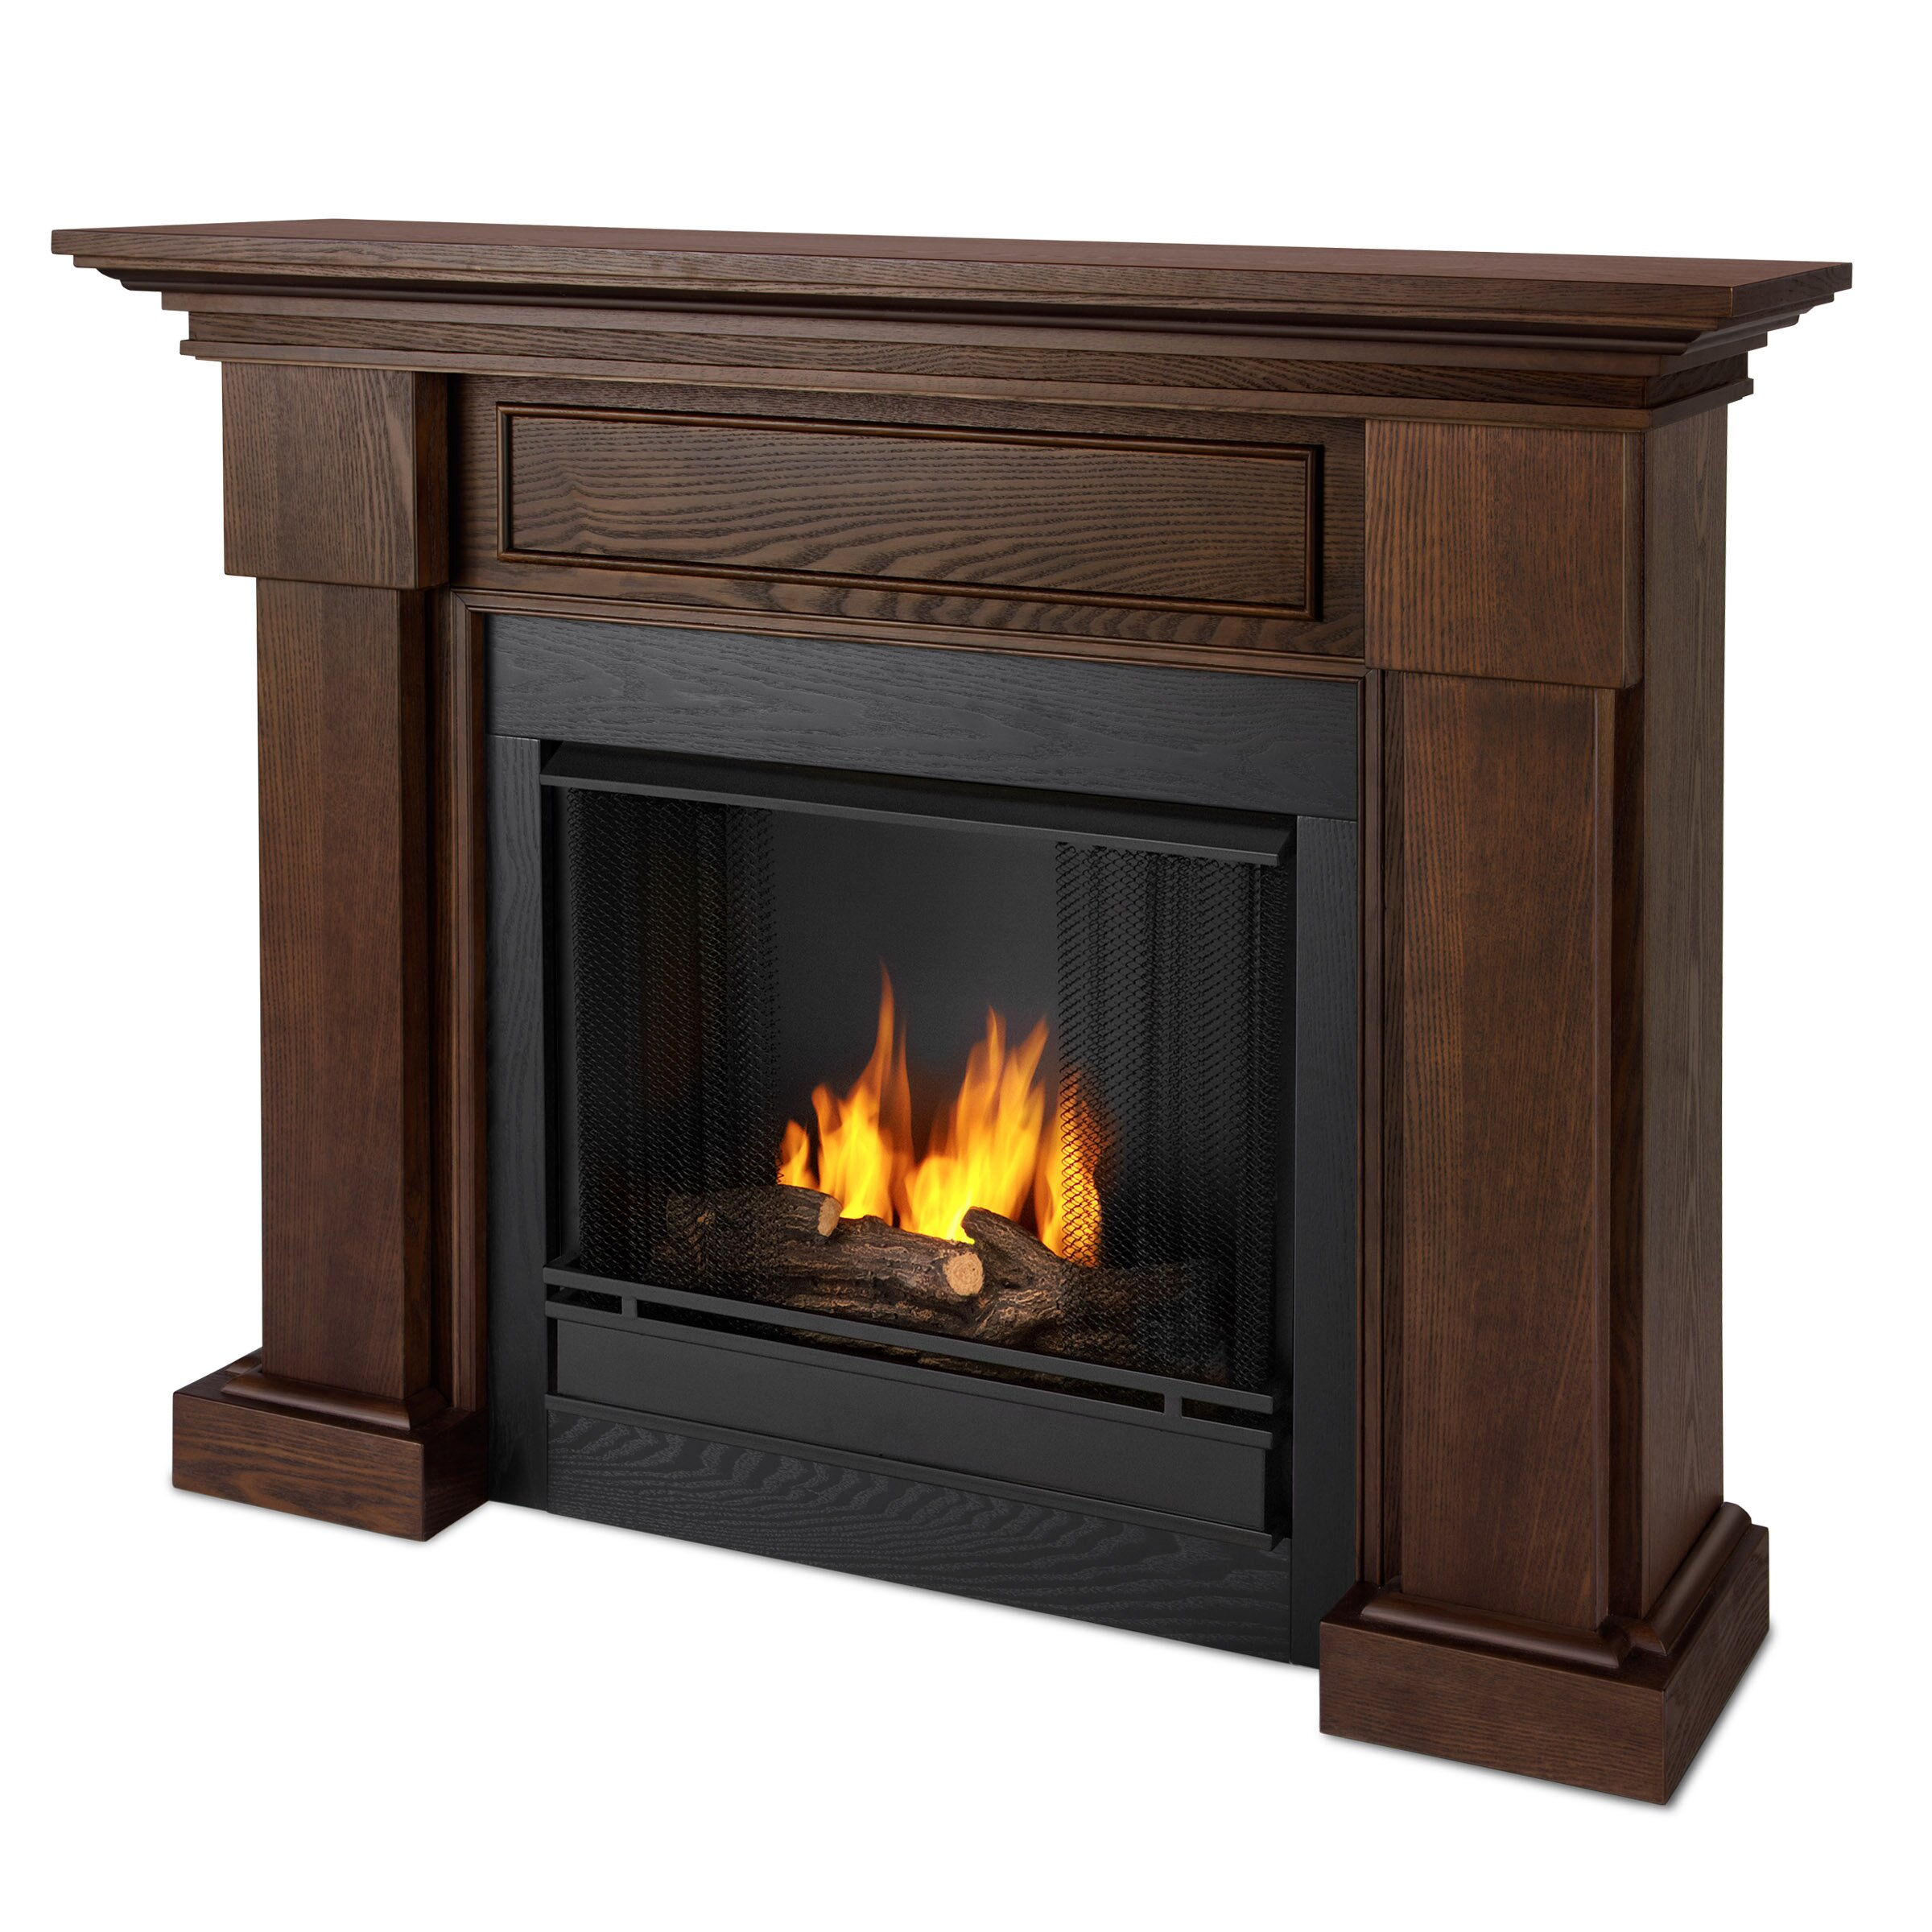 Real Flame Hillcrest Gel Fuel Fireplace Reviews Wayfair